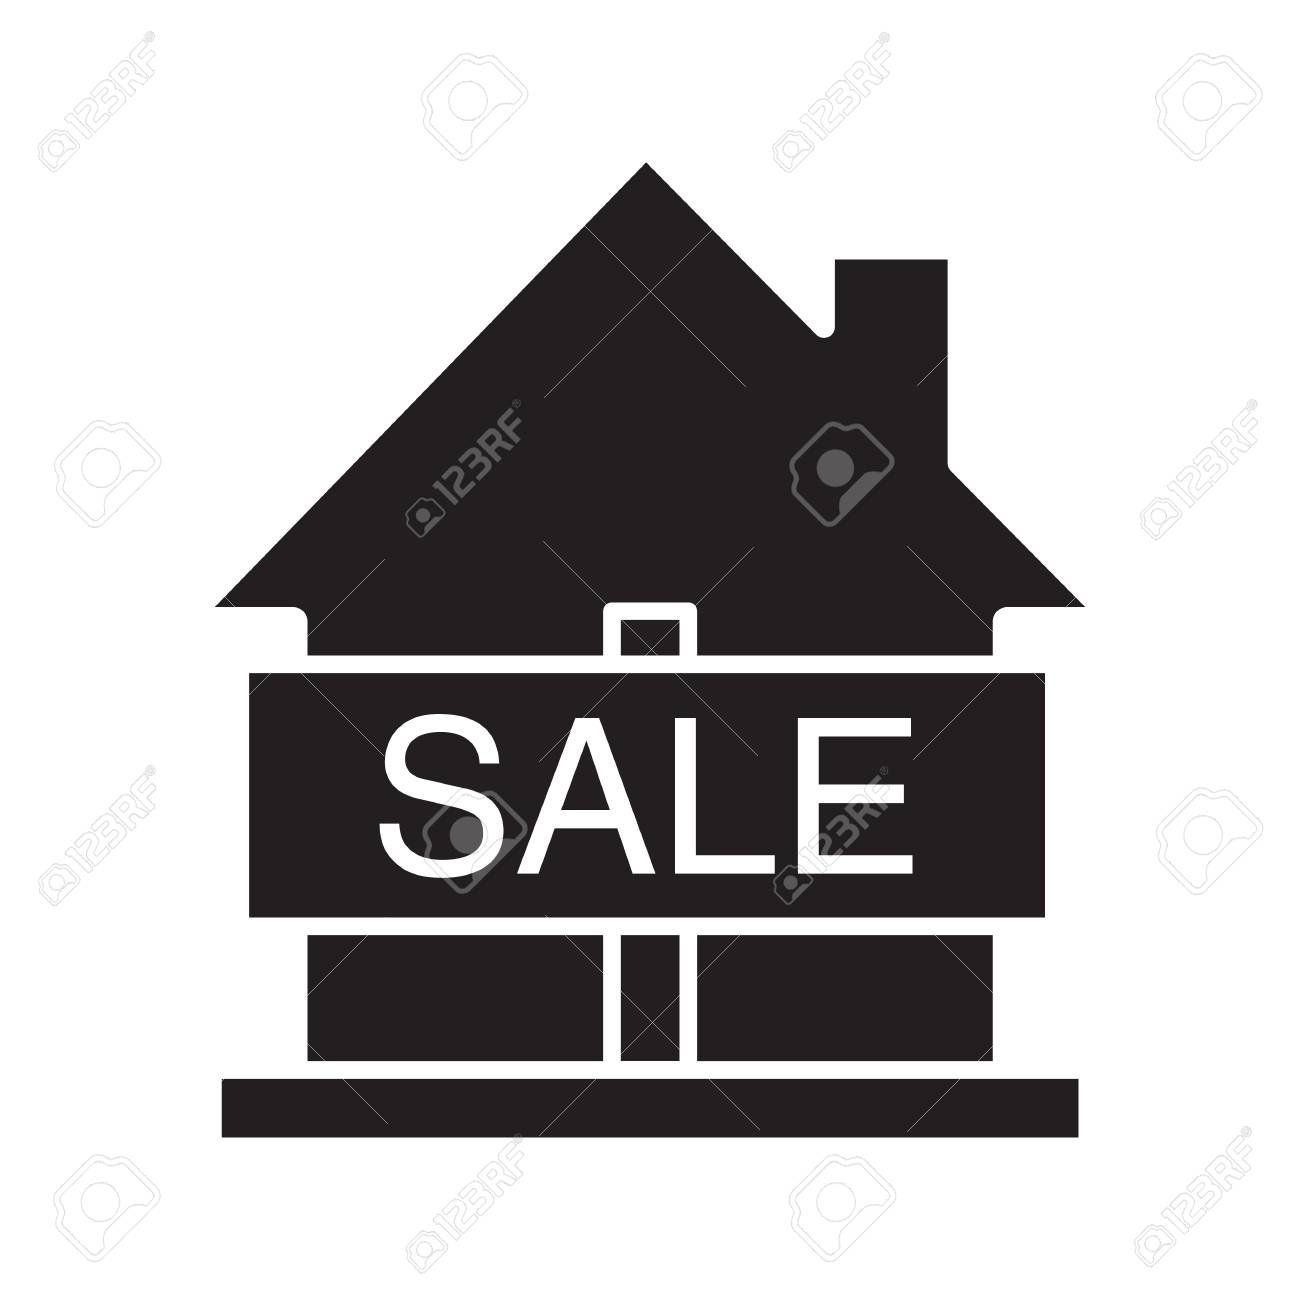 House for sale glyph icon silhouette symbol real estate market house for sale glyph icon silhouette symbol real estate market negative space biocorpaavc Image collections